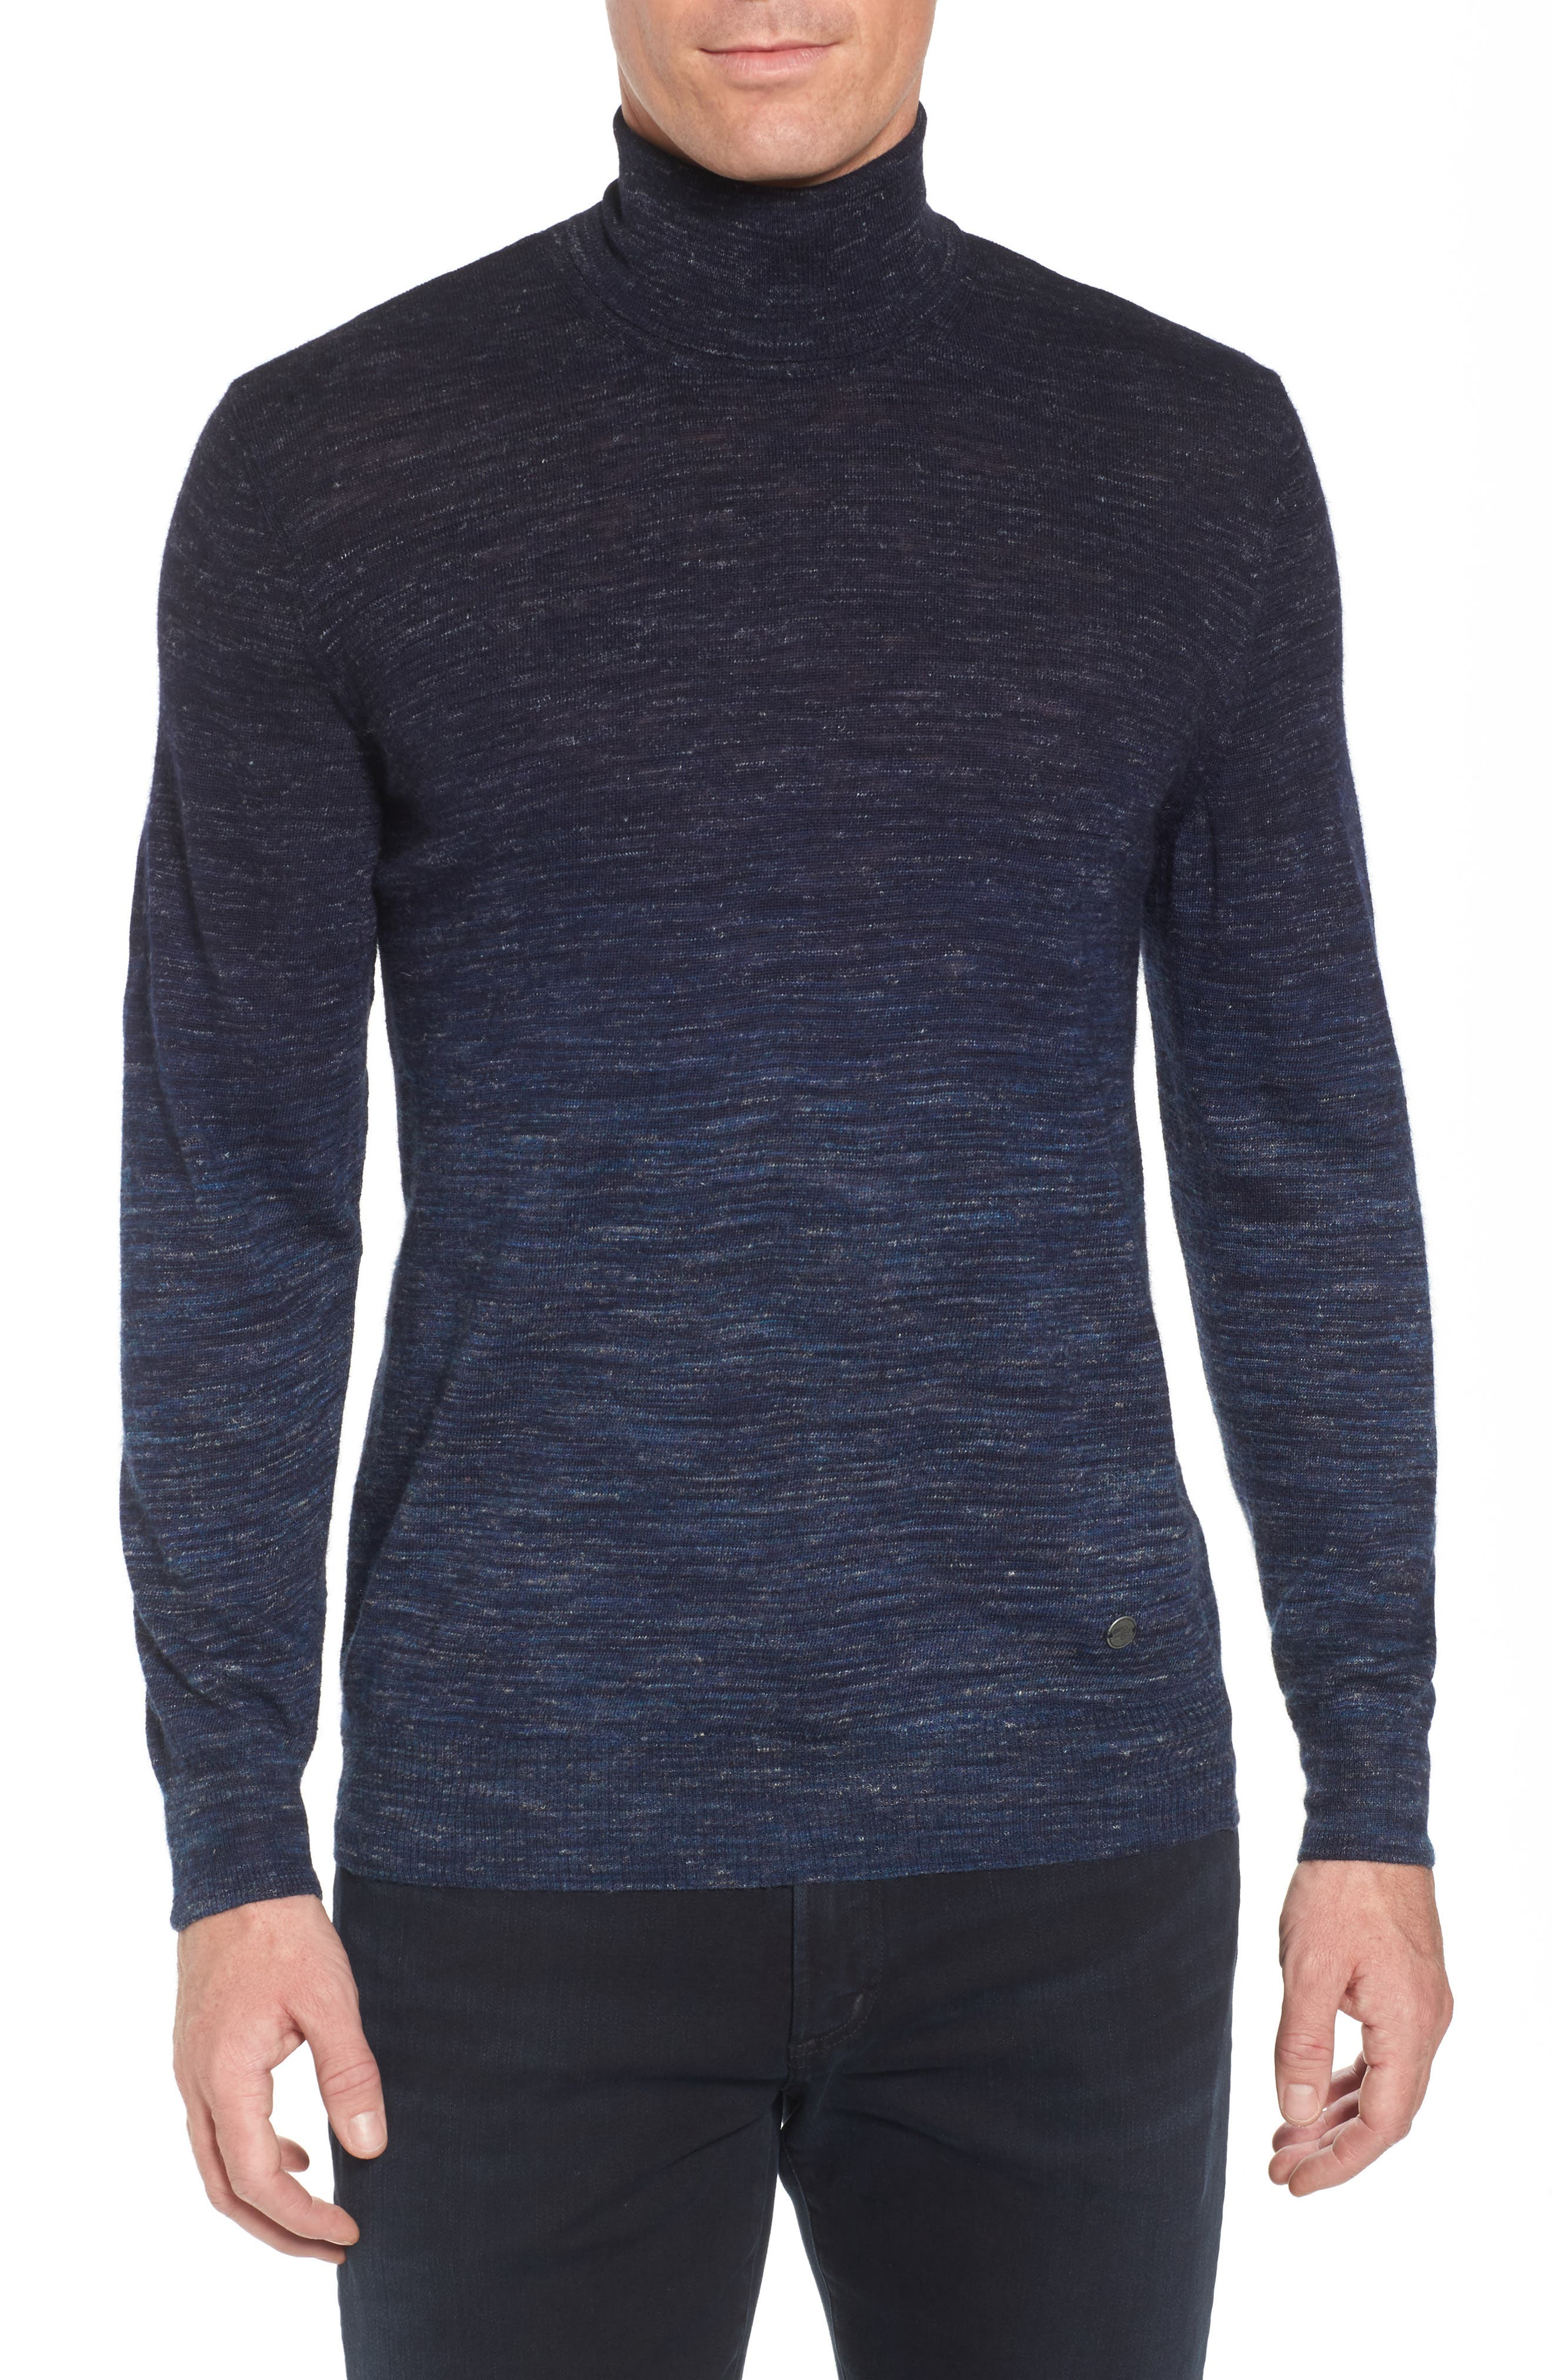 Stone Rose Regular Fit Dip Dye Turtleneck